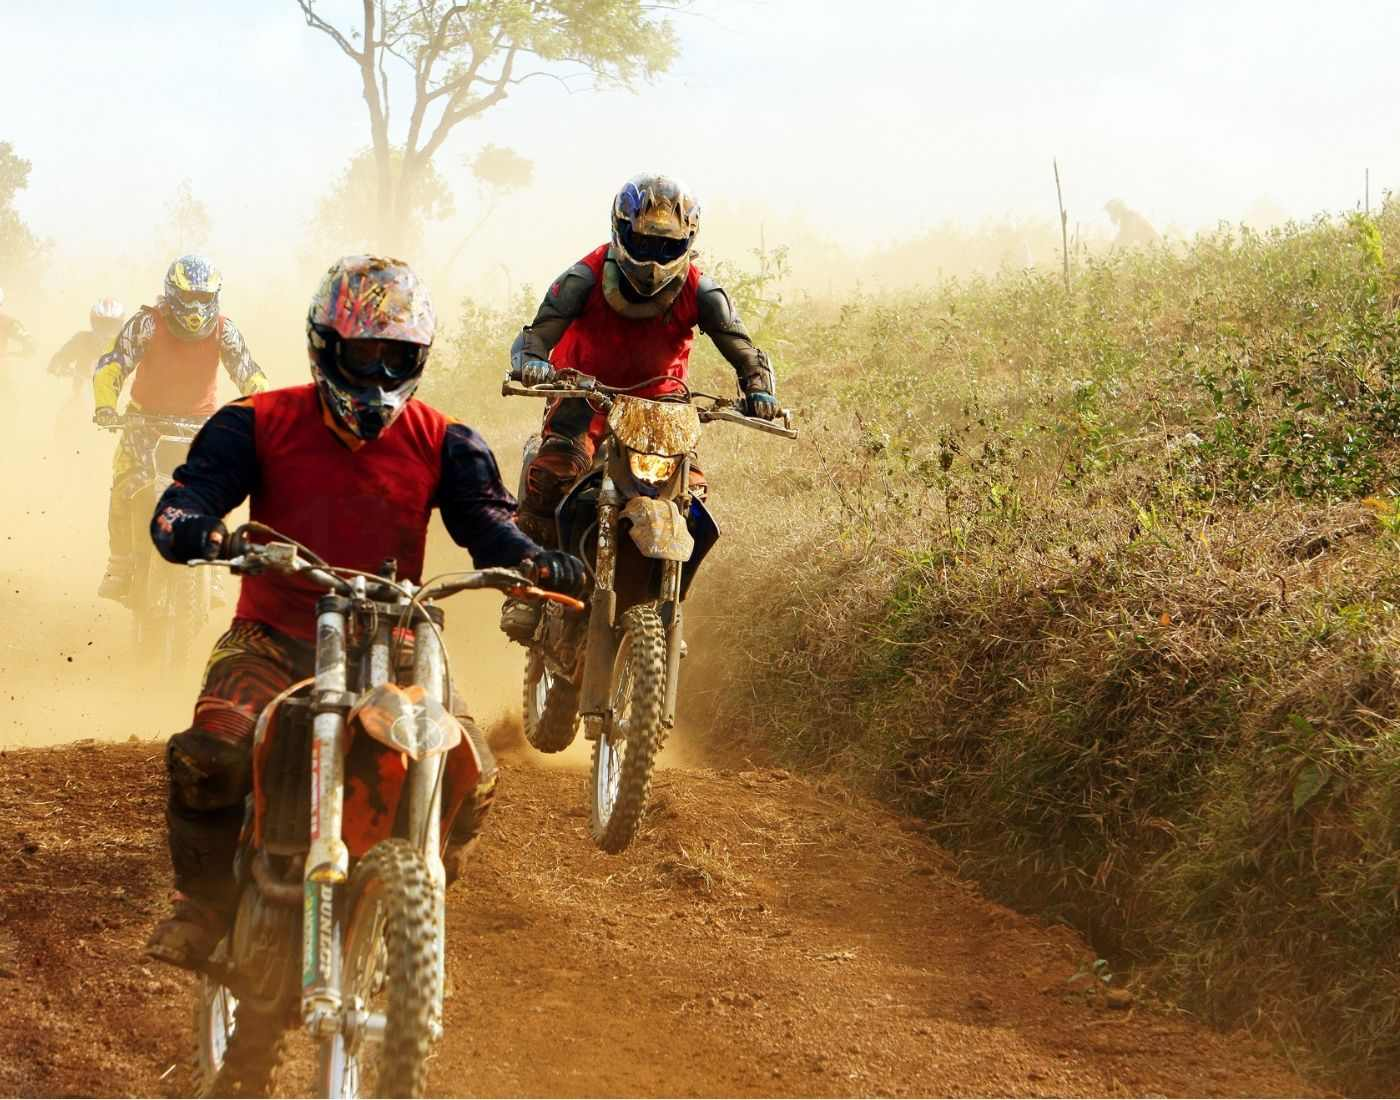 Off Road Motorcycling